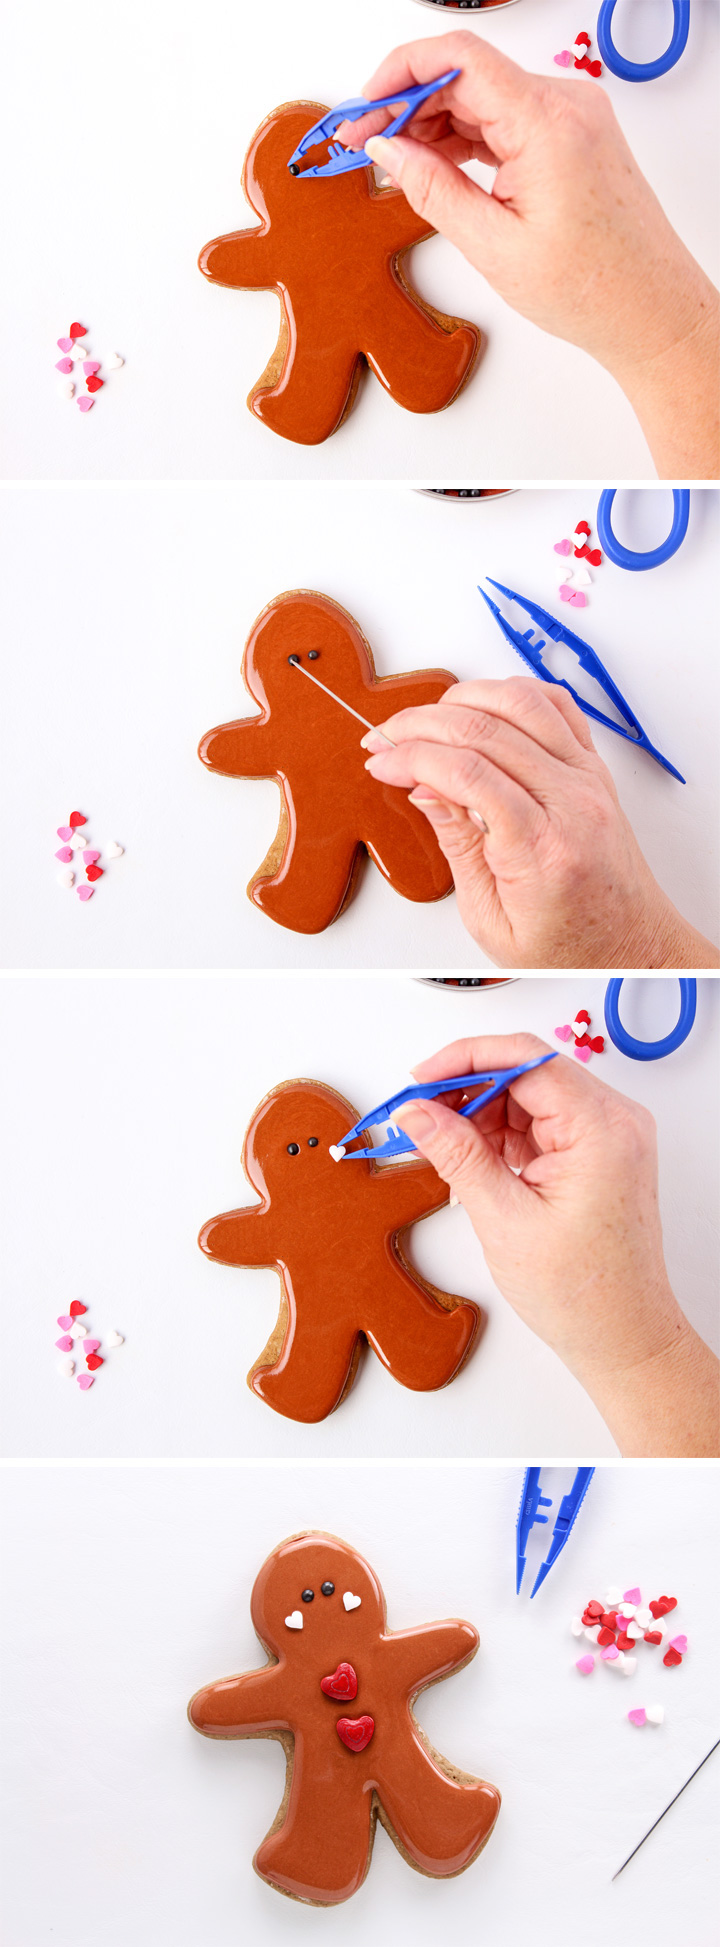 How to Make Simple Gingerbread Cookies | The Bearfoot Baker